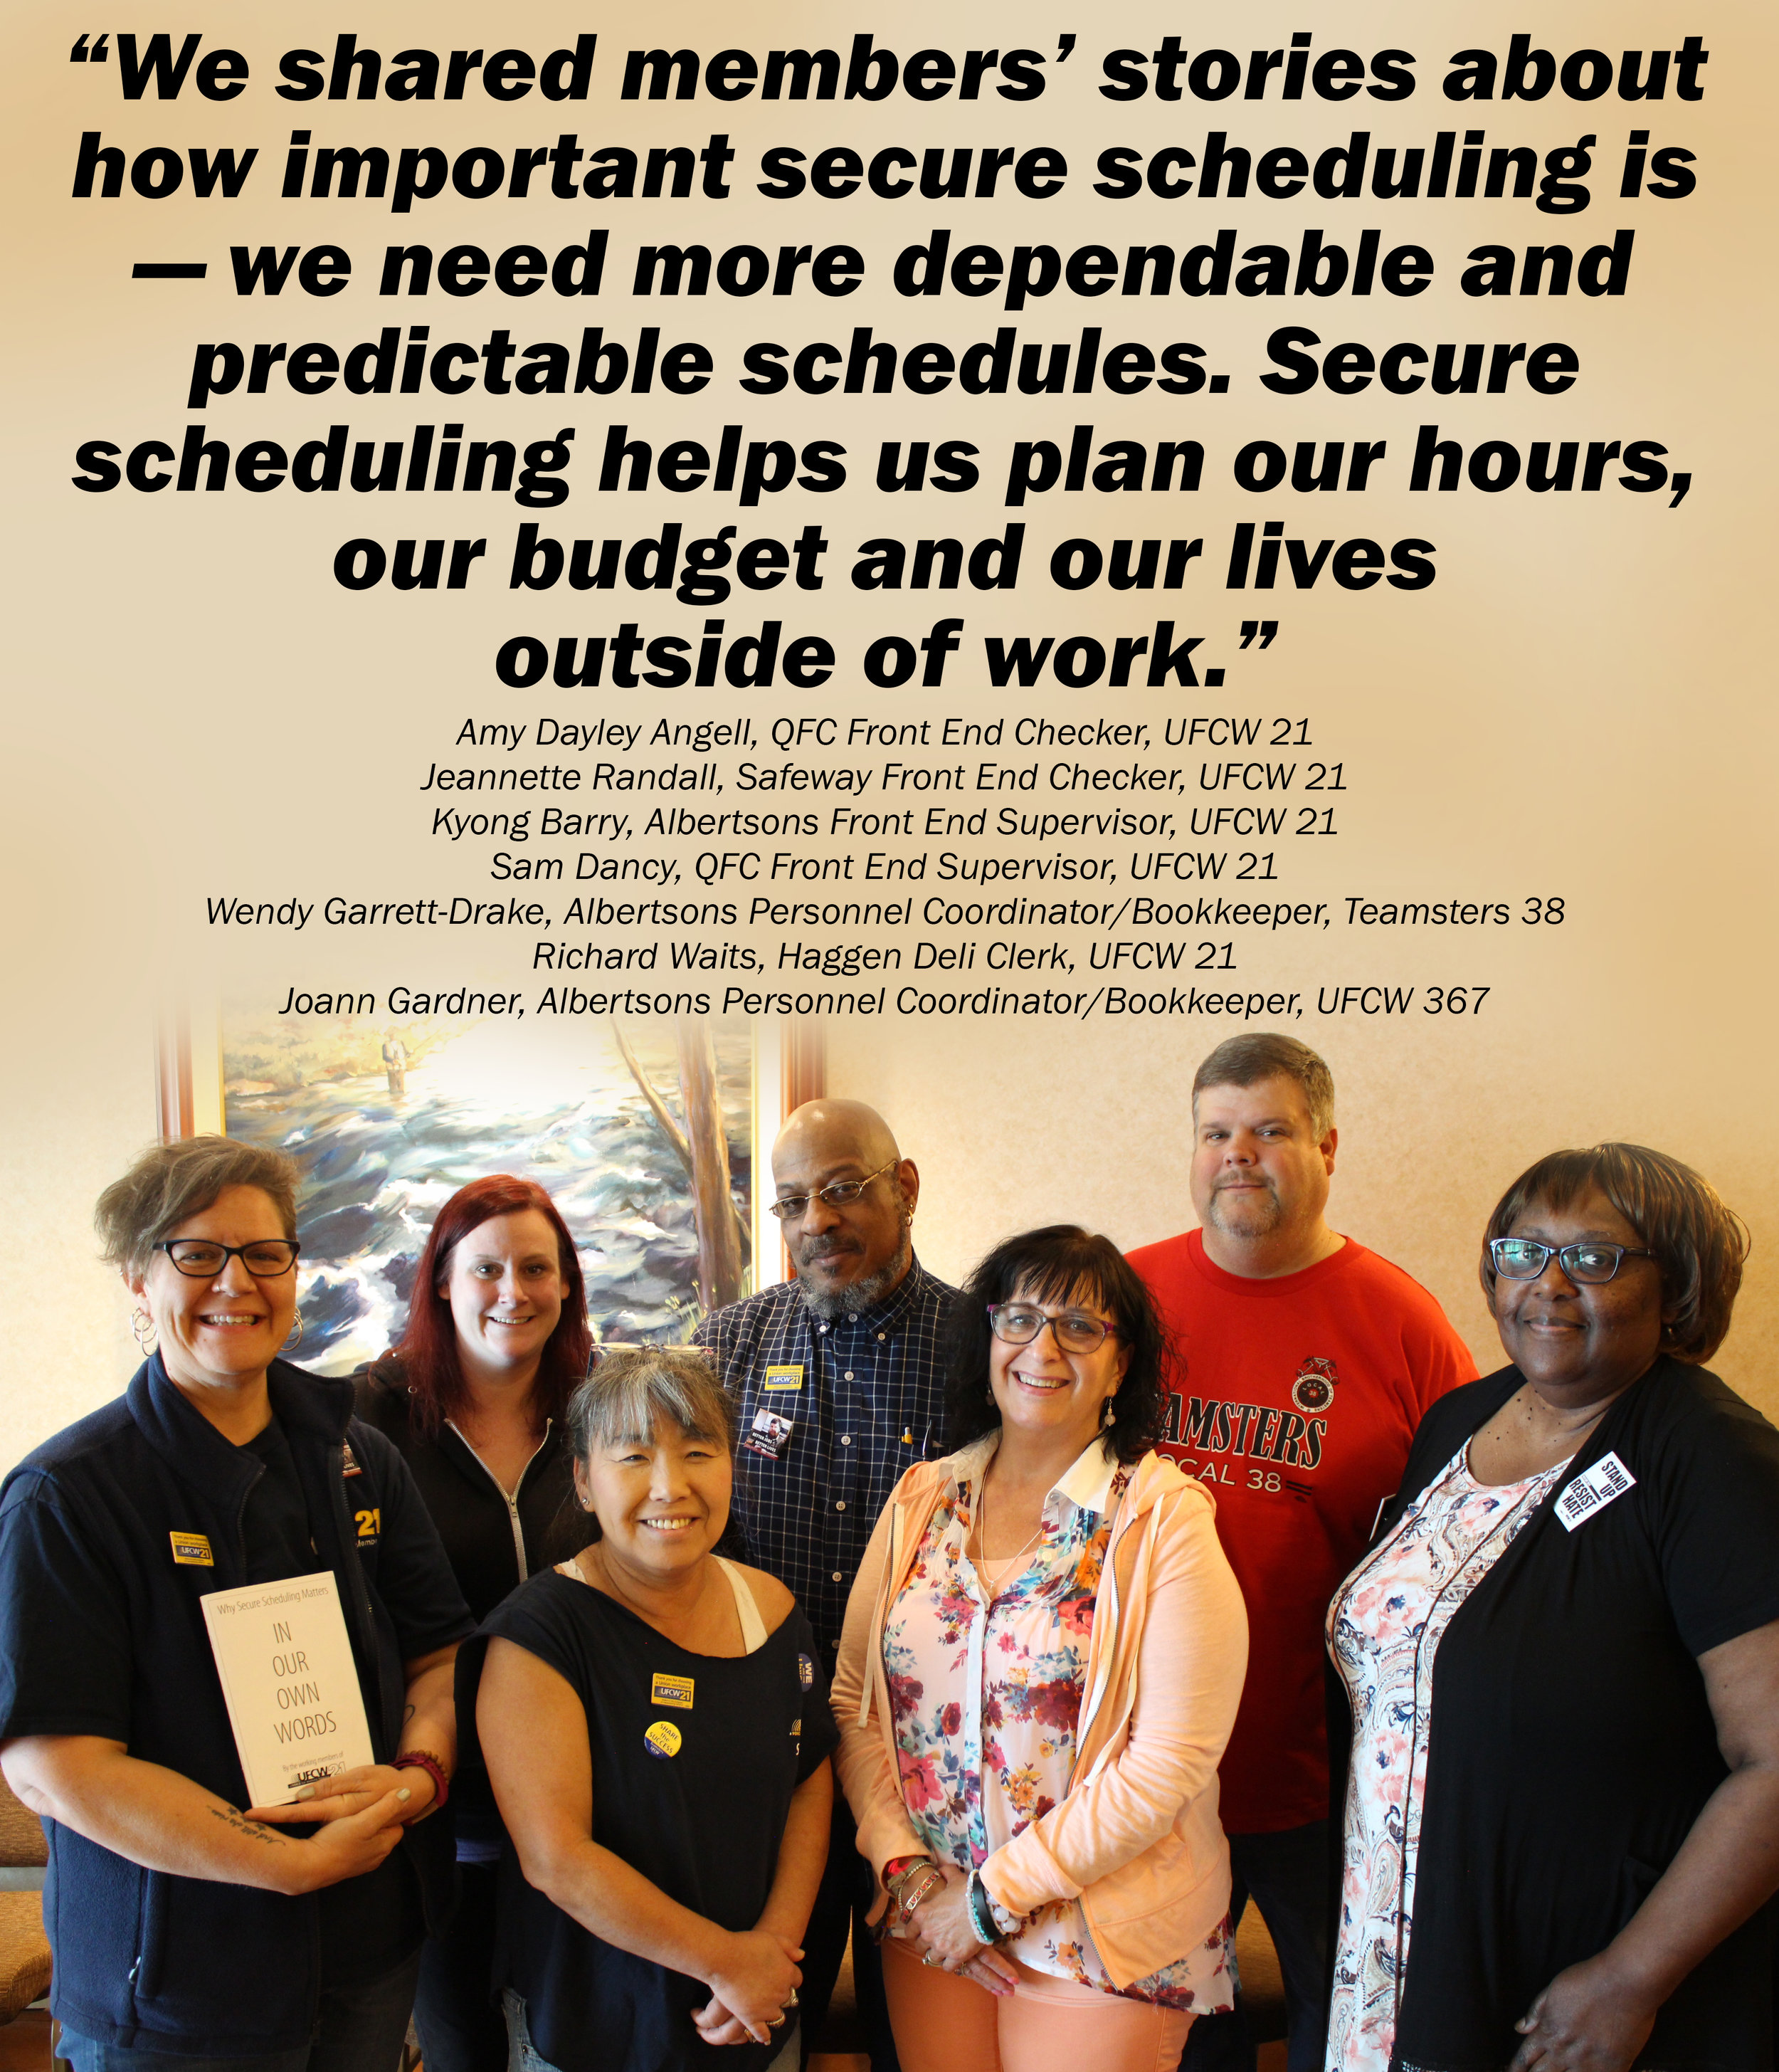 Amy Dayley Angell, QFC Front End Checker, UFCW 21; Jeannette Randall, Safeway Front End Checker, UFCW 21; Kyong Barry, Albertsons Front End Supervisor, UFCW 21; Sam Dancy, QFC Front End Supervisor, UFCW 21; Wendy Garrett-Drake, Albertsons Personnel Coordinator/Bookkeeper, Teamsters 38; Richard Waits, Haggen Deli Clerk, UFCW 21; Joann Gardner, Albertsons Personnel Coordinator/Bookkeeper, UFCW 367